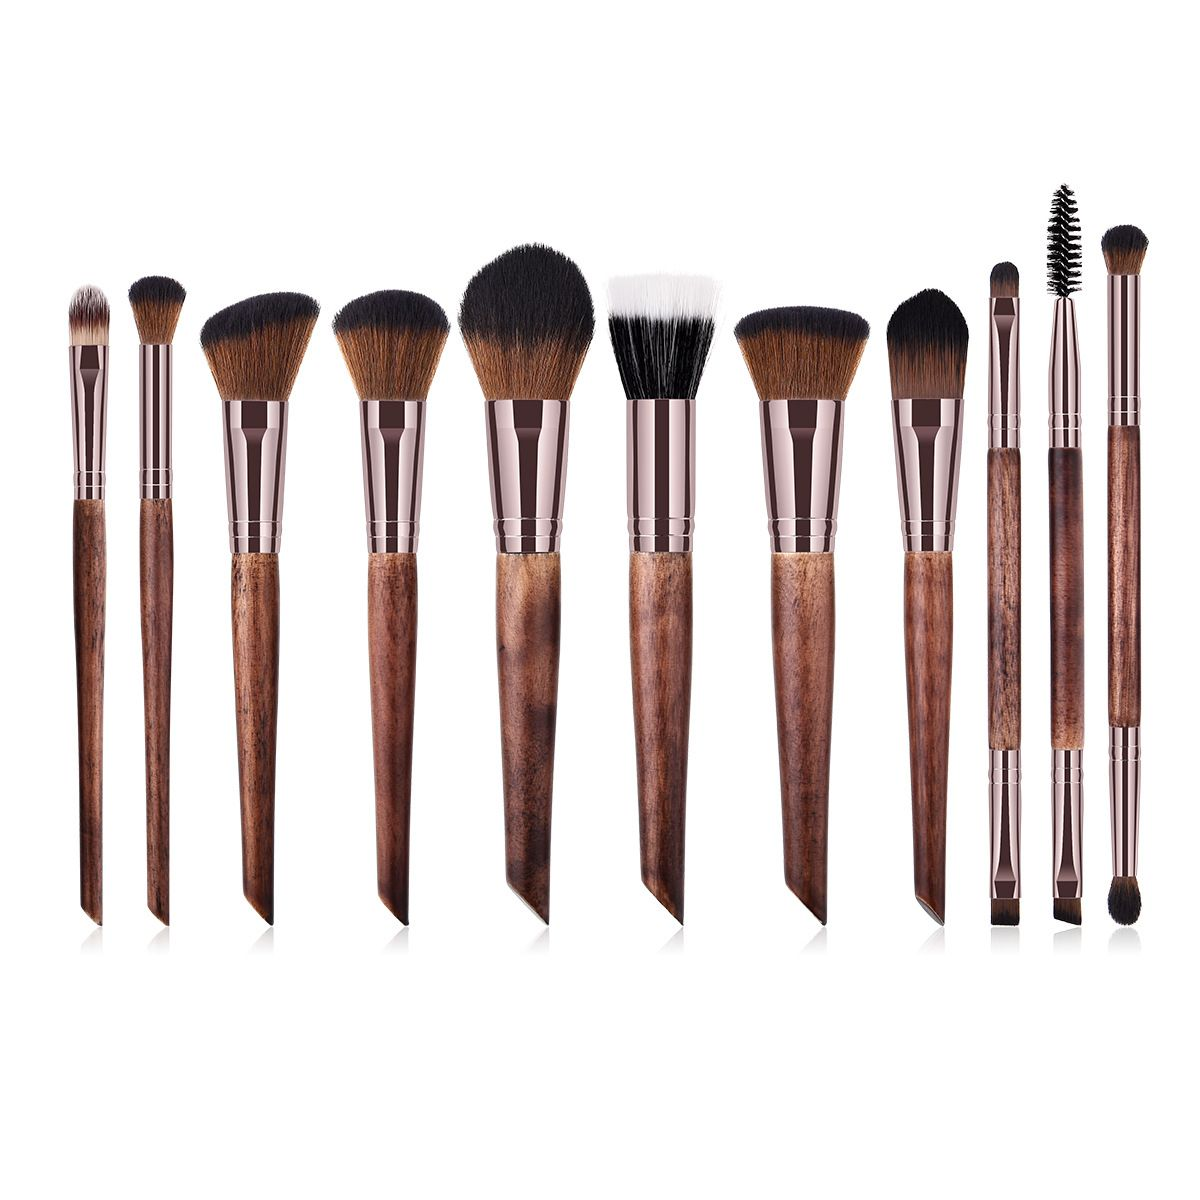 Luxury makeup brushes set available wholesale wooden